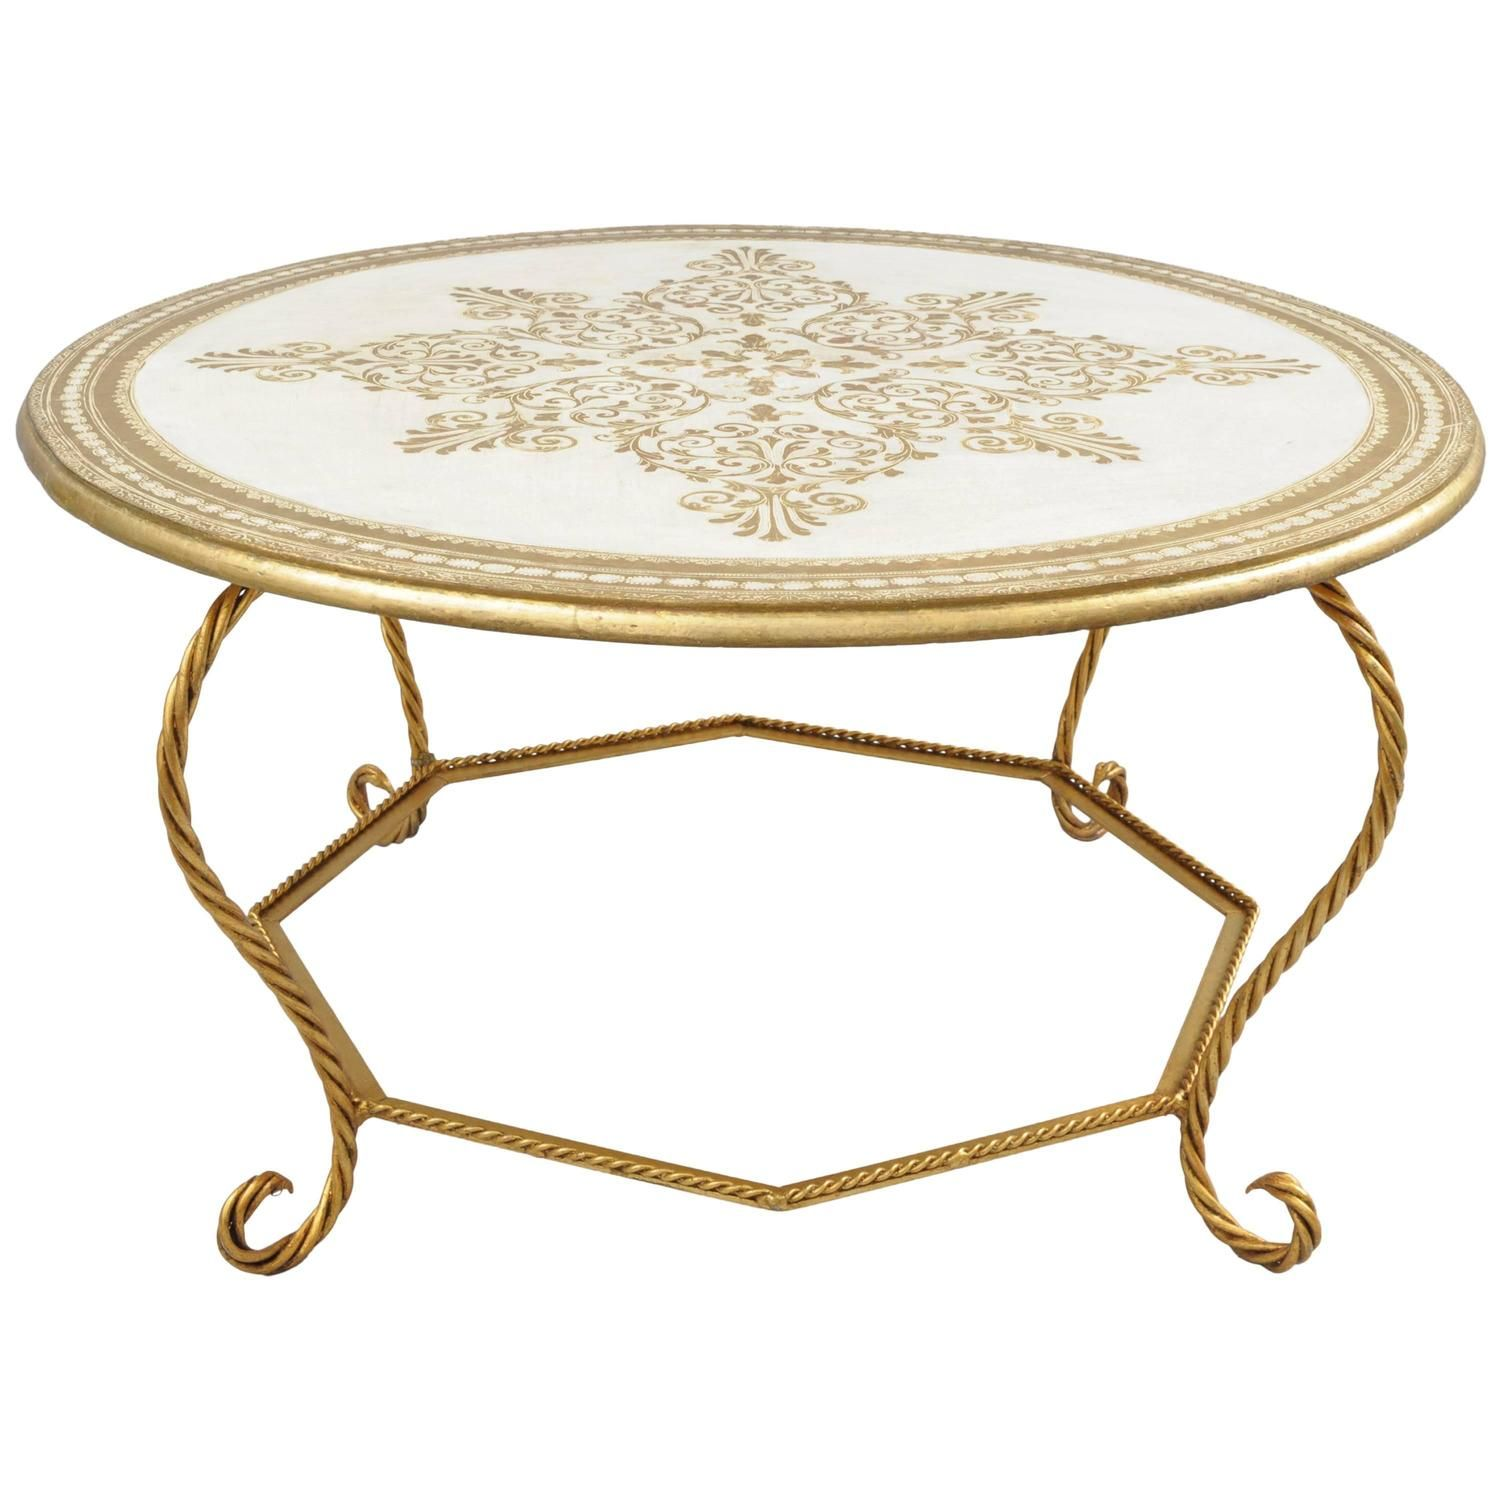 Italian Florentine Hollywood Regency Gold Wood And Iron Rope Round Coffee Table Coffee Table Round Coffee Table Gold Wood [ 1500 x 1500 Pixel ]